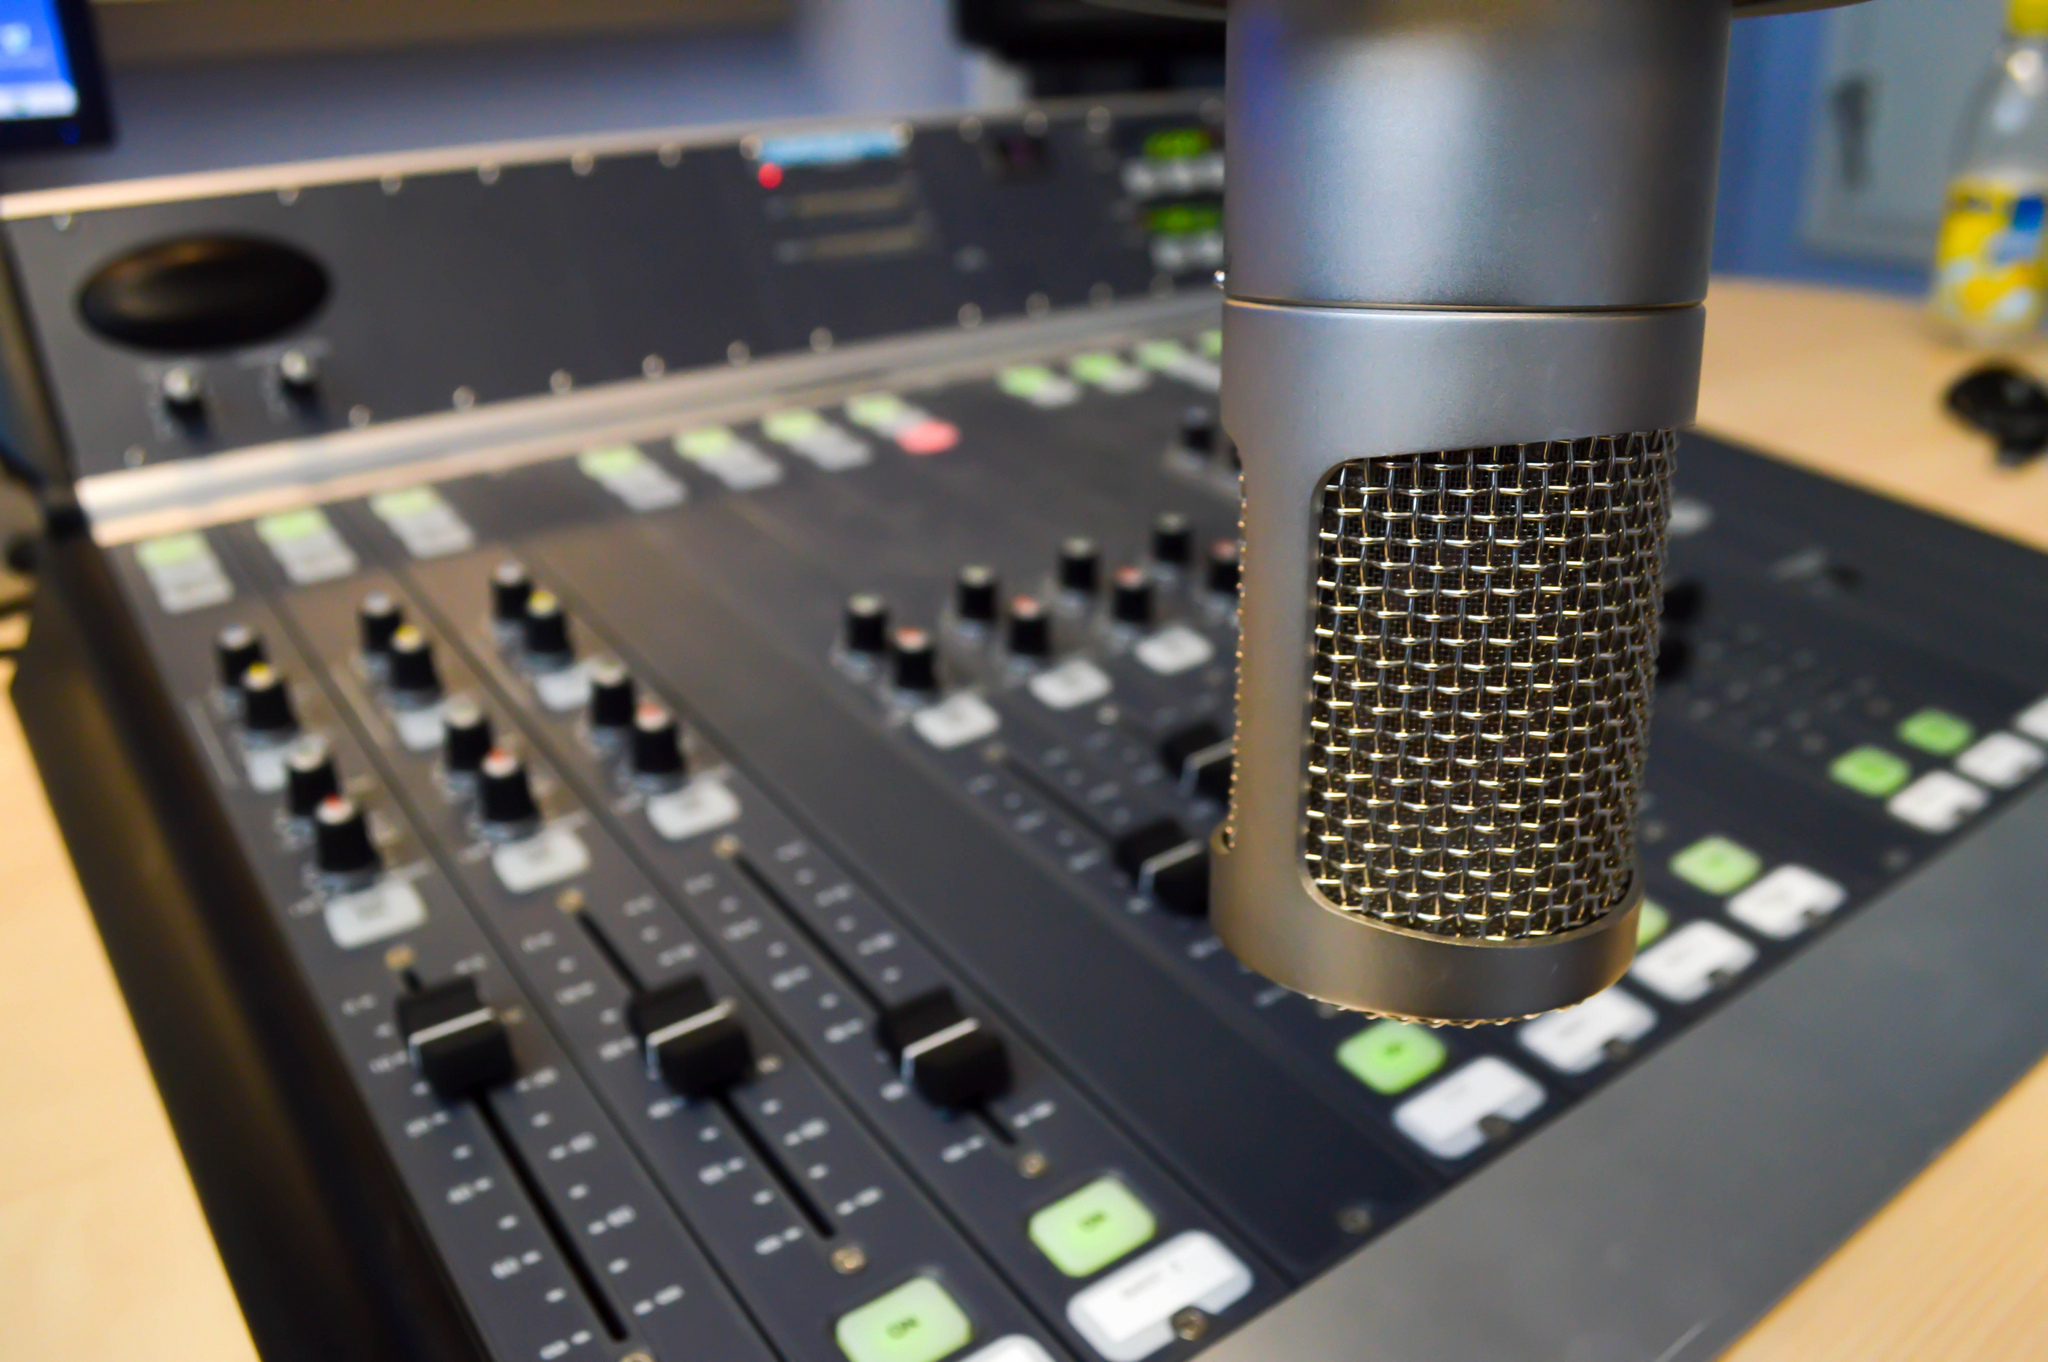 What makes a good pitch? NPR editors weigh in